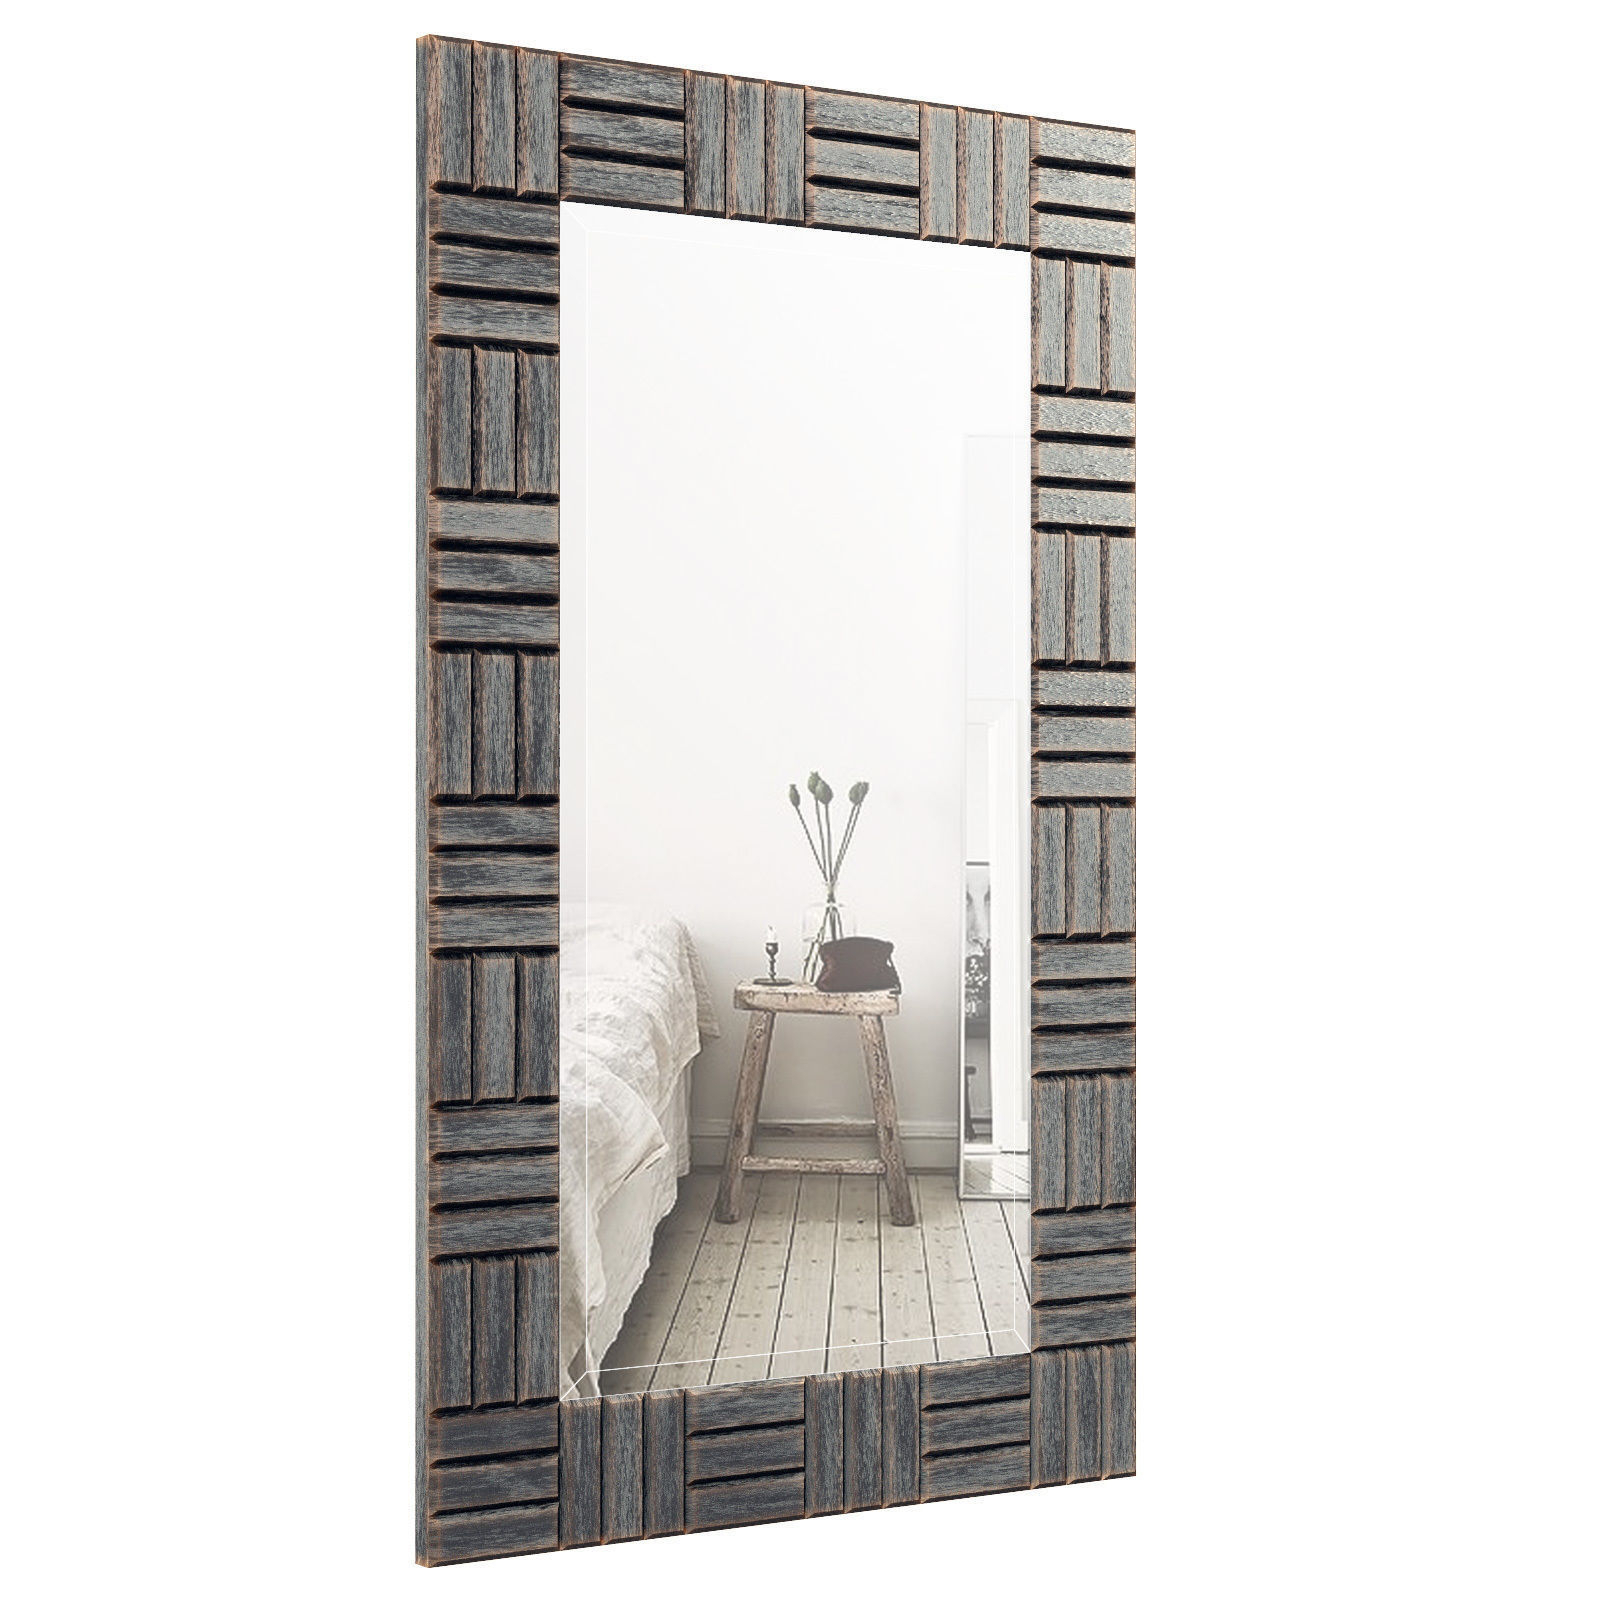 Silver Frame Accent Mirror Orel3063 | 3d Model Within Silver Frame Accent Mirrors (View 3 of 30)